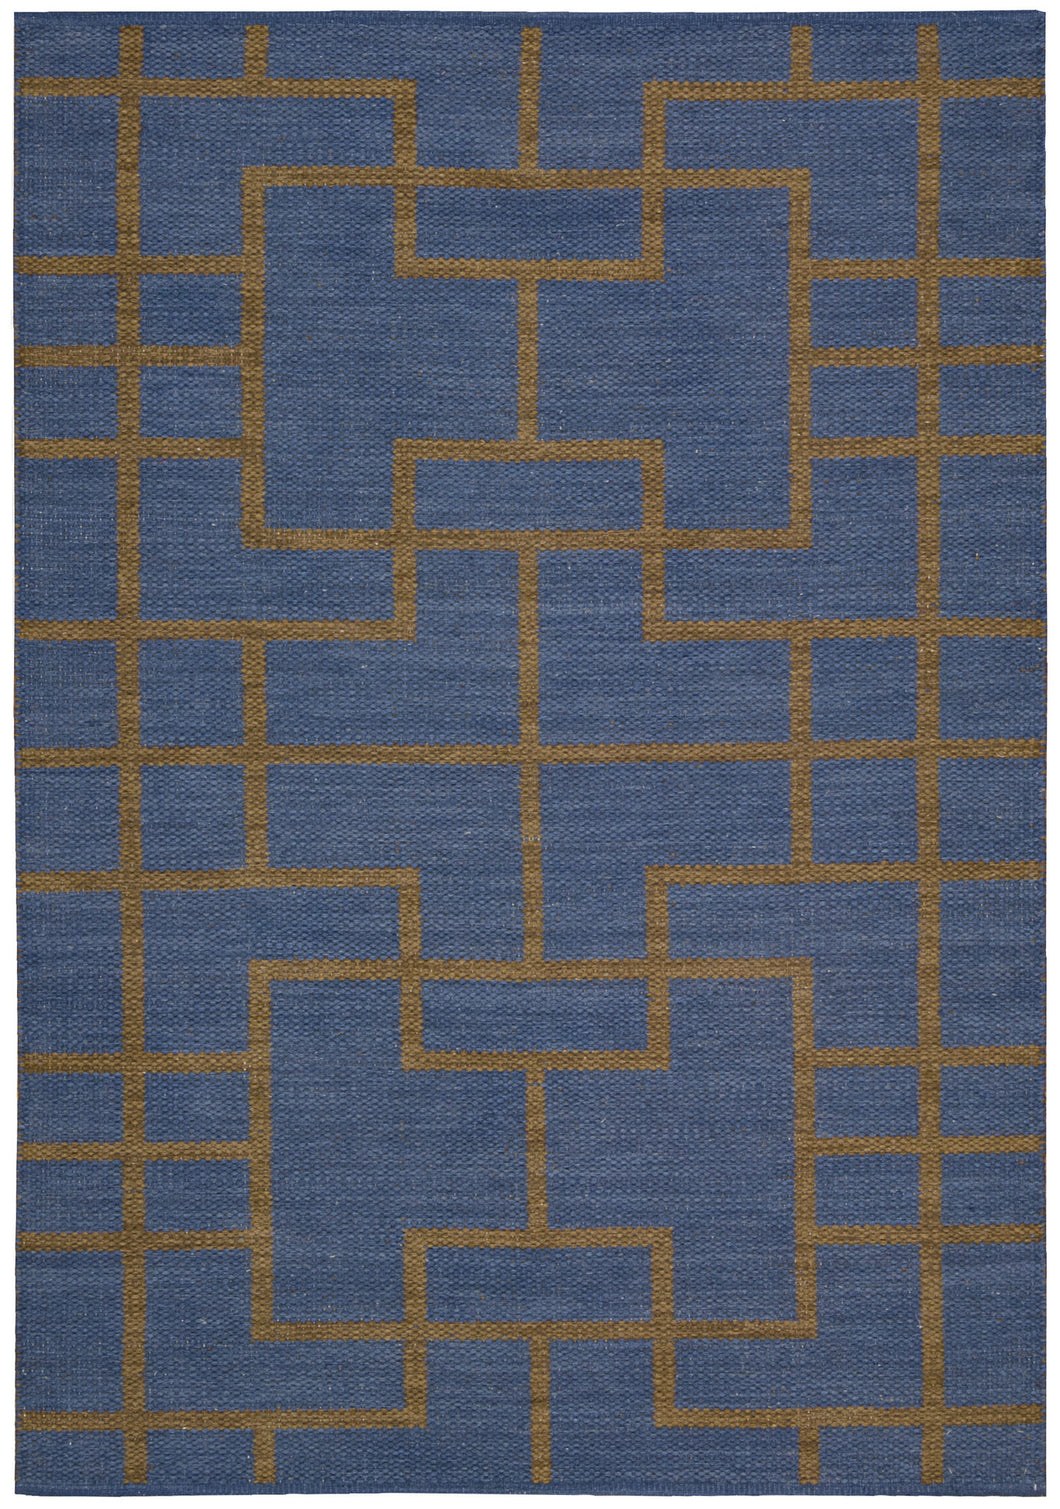 Barclay Butera Maze Ocean Area Rug By Nourison MAZ02 OCEAN (Rectangle) | BOGO USA